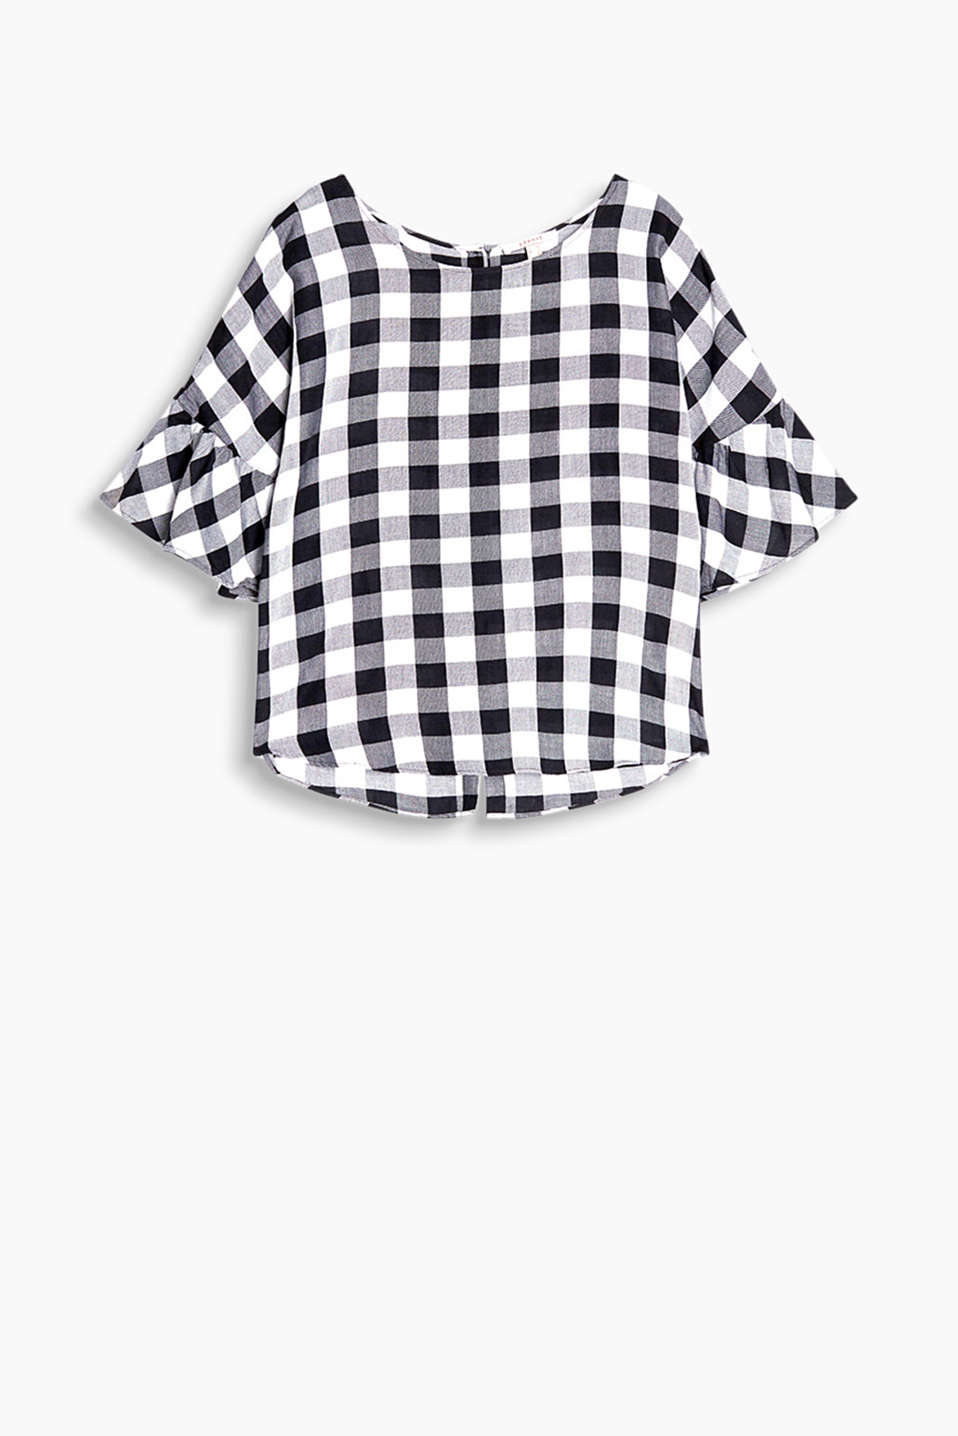 With a stylish check pattern: boxy blouse in a pretty look